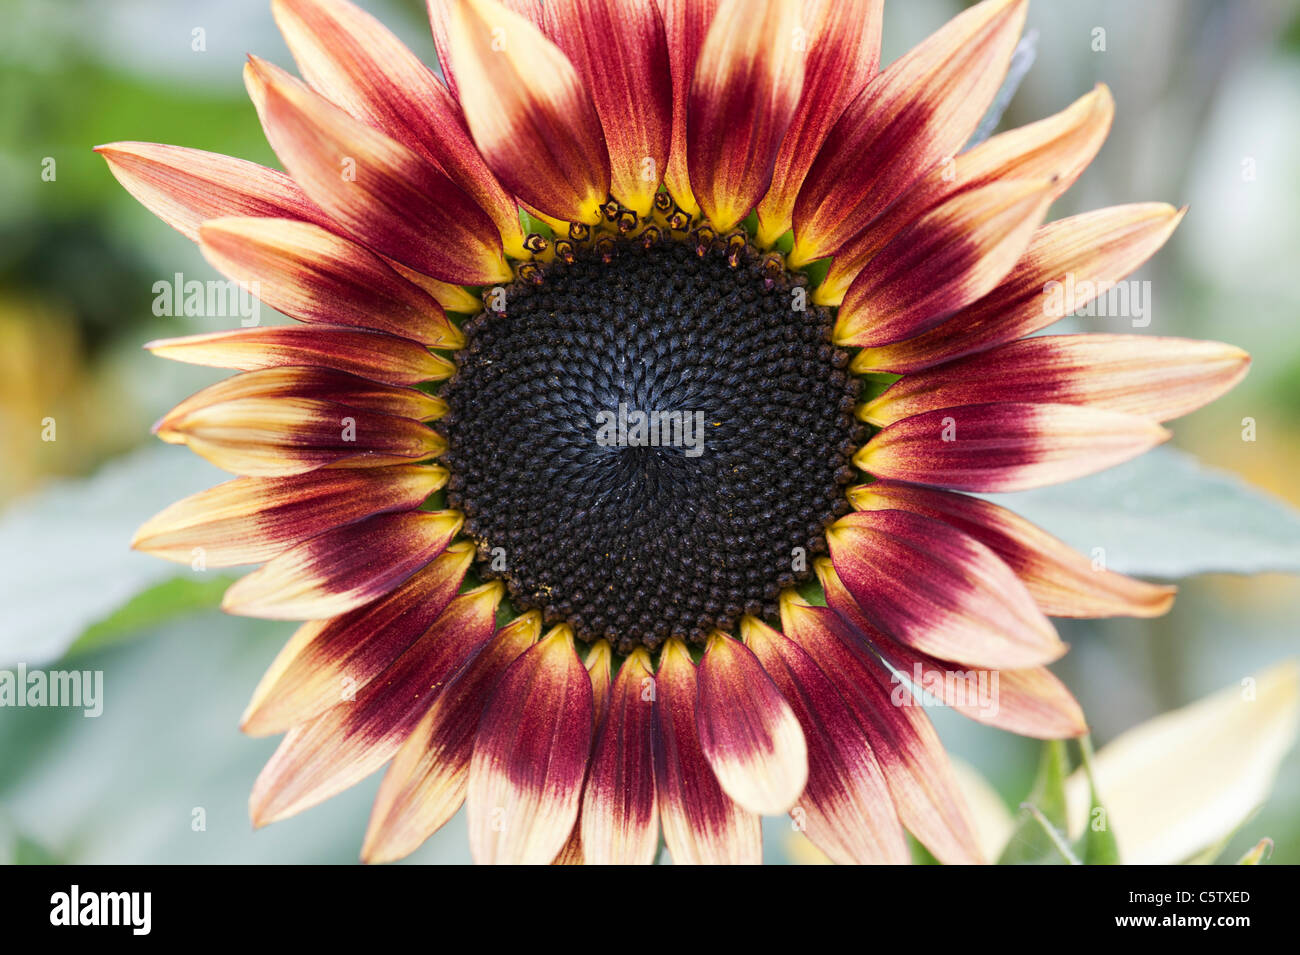 Helianthus annuus. Sunflower pastiche - Stock Image